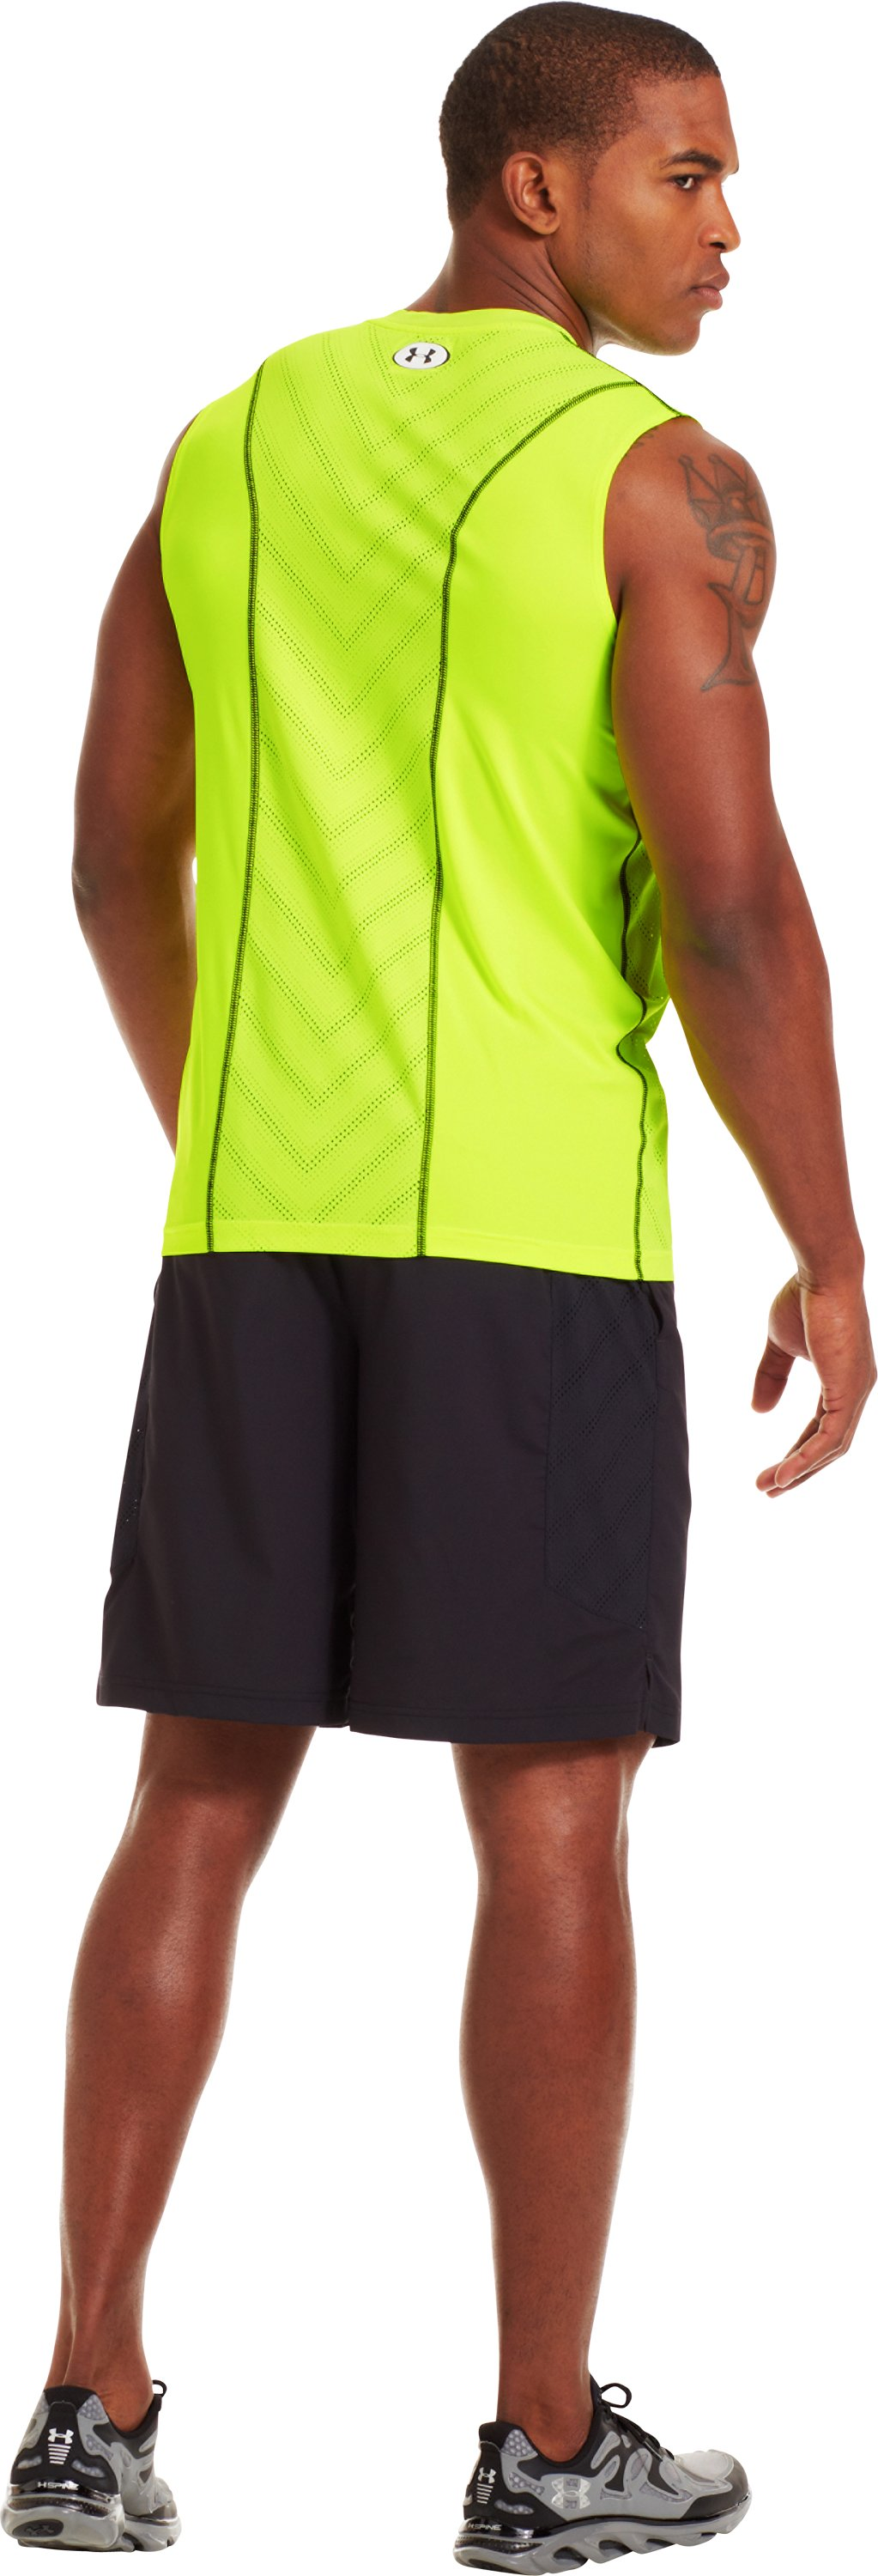 Men's HeatGear® Sonic ArmourVent™ Sleeveless, High-Vis Yellow, Back